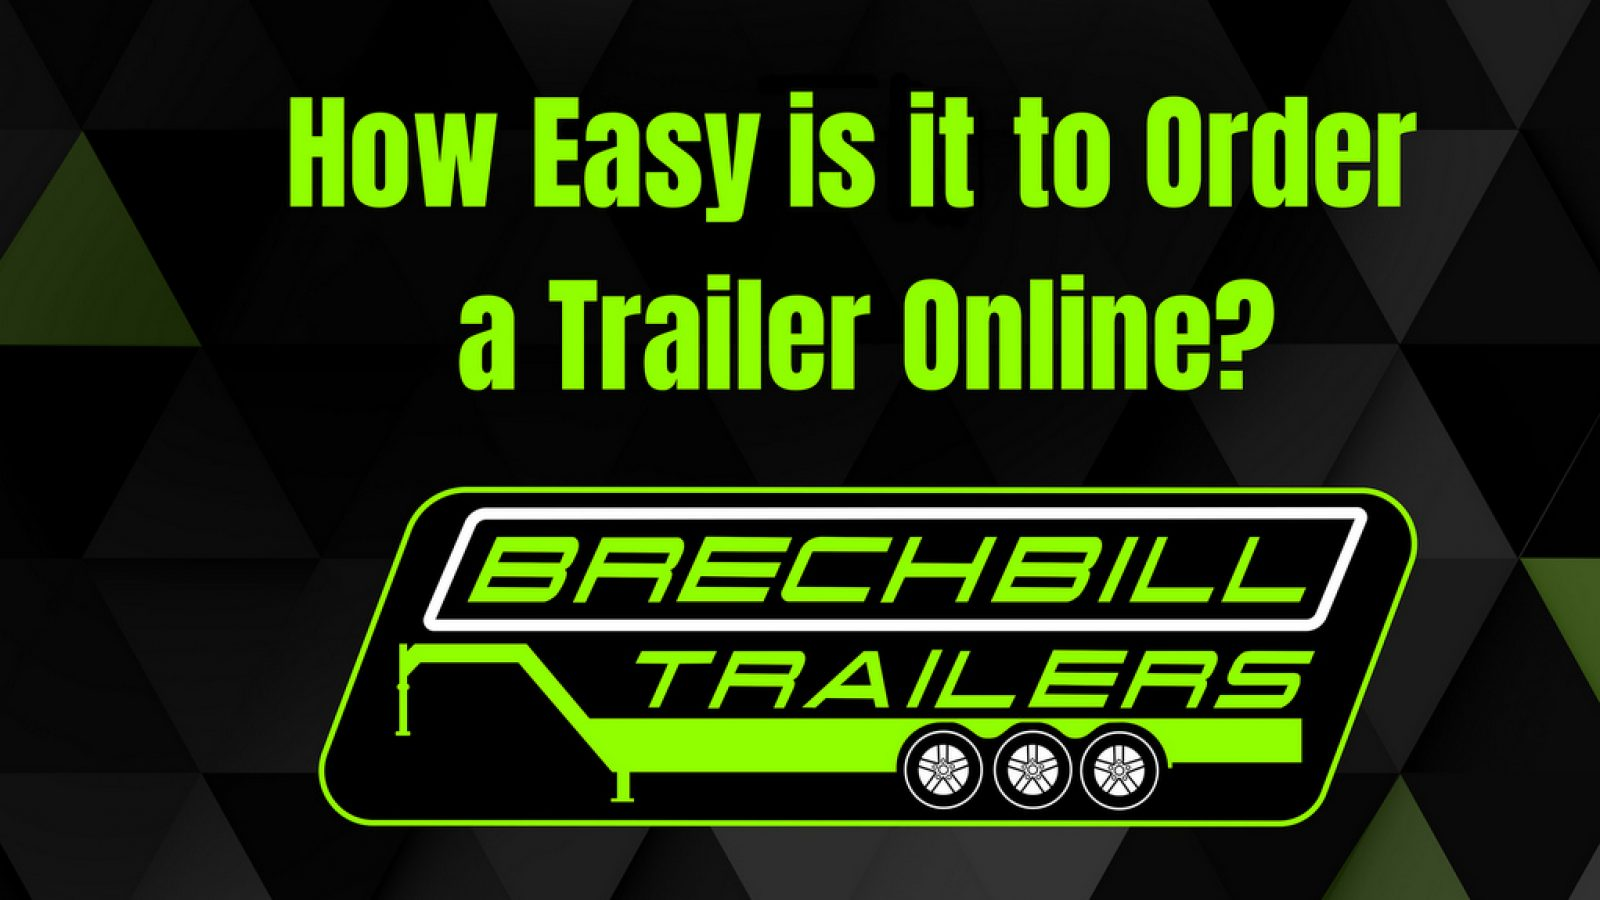 Order your trailers online